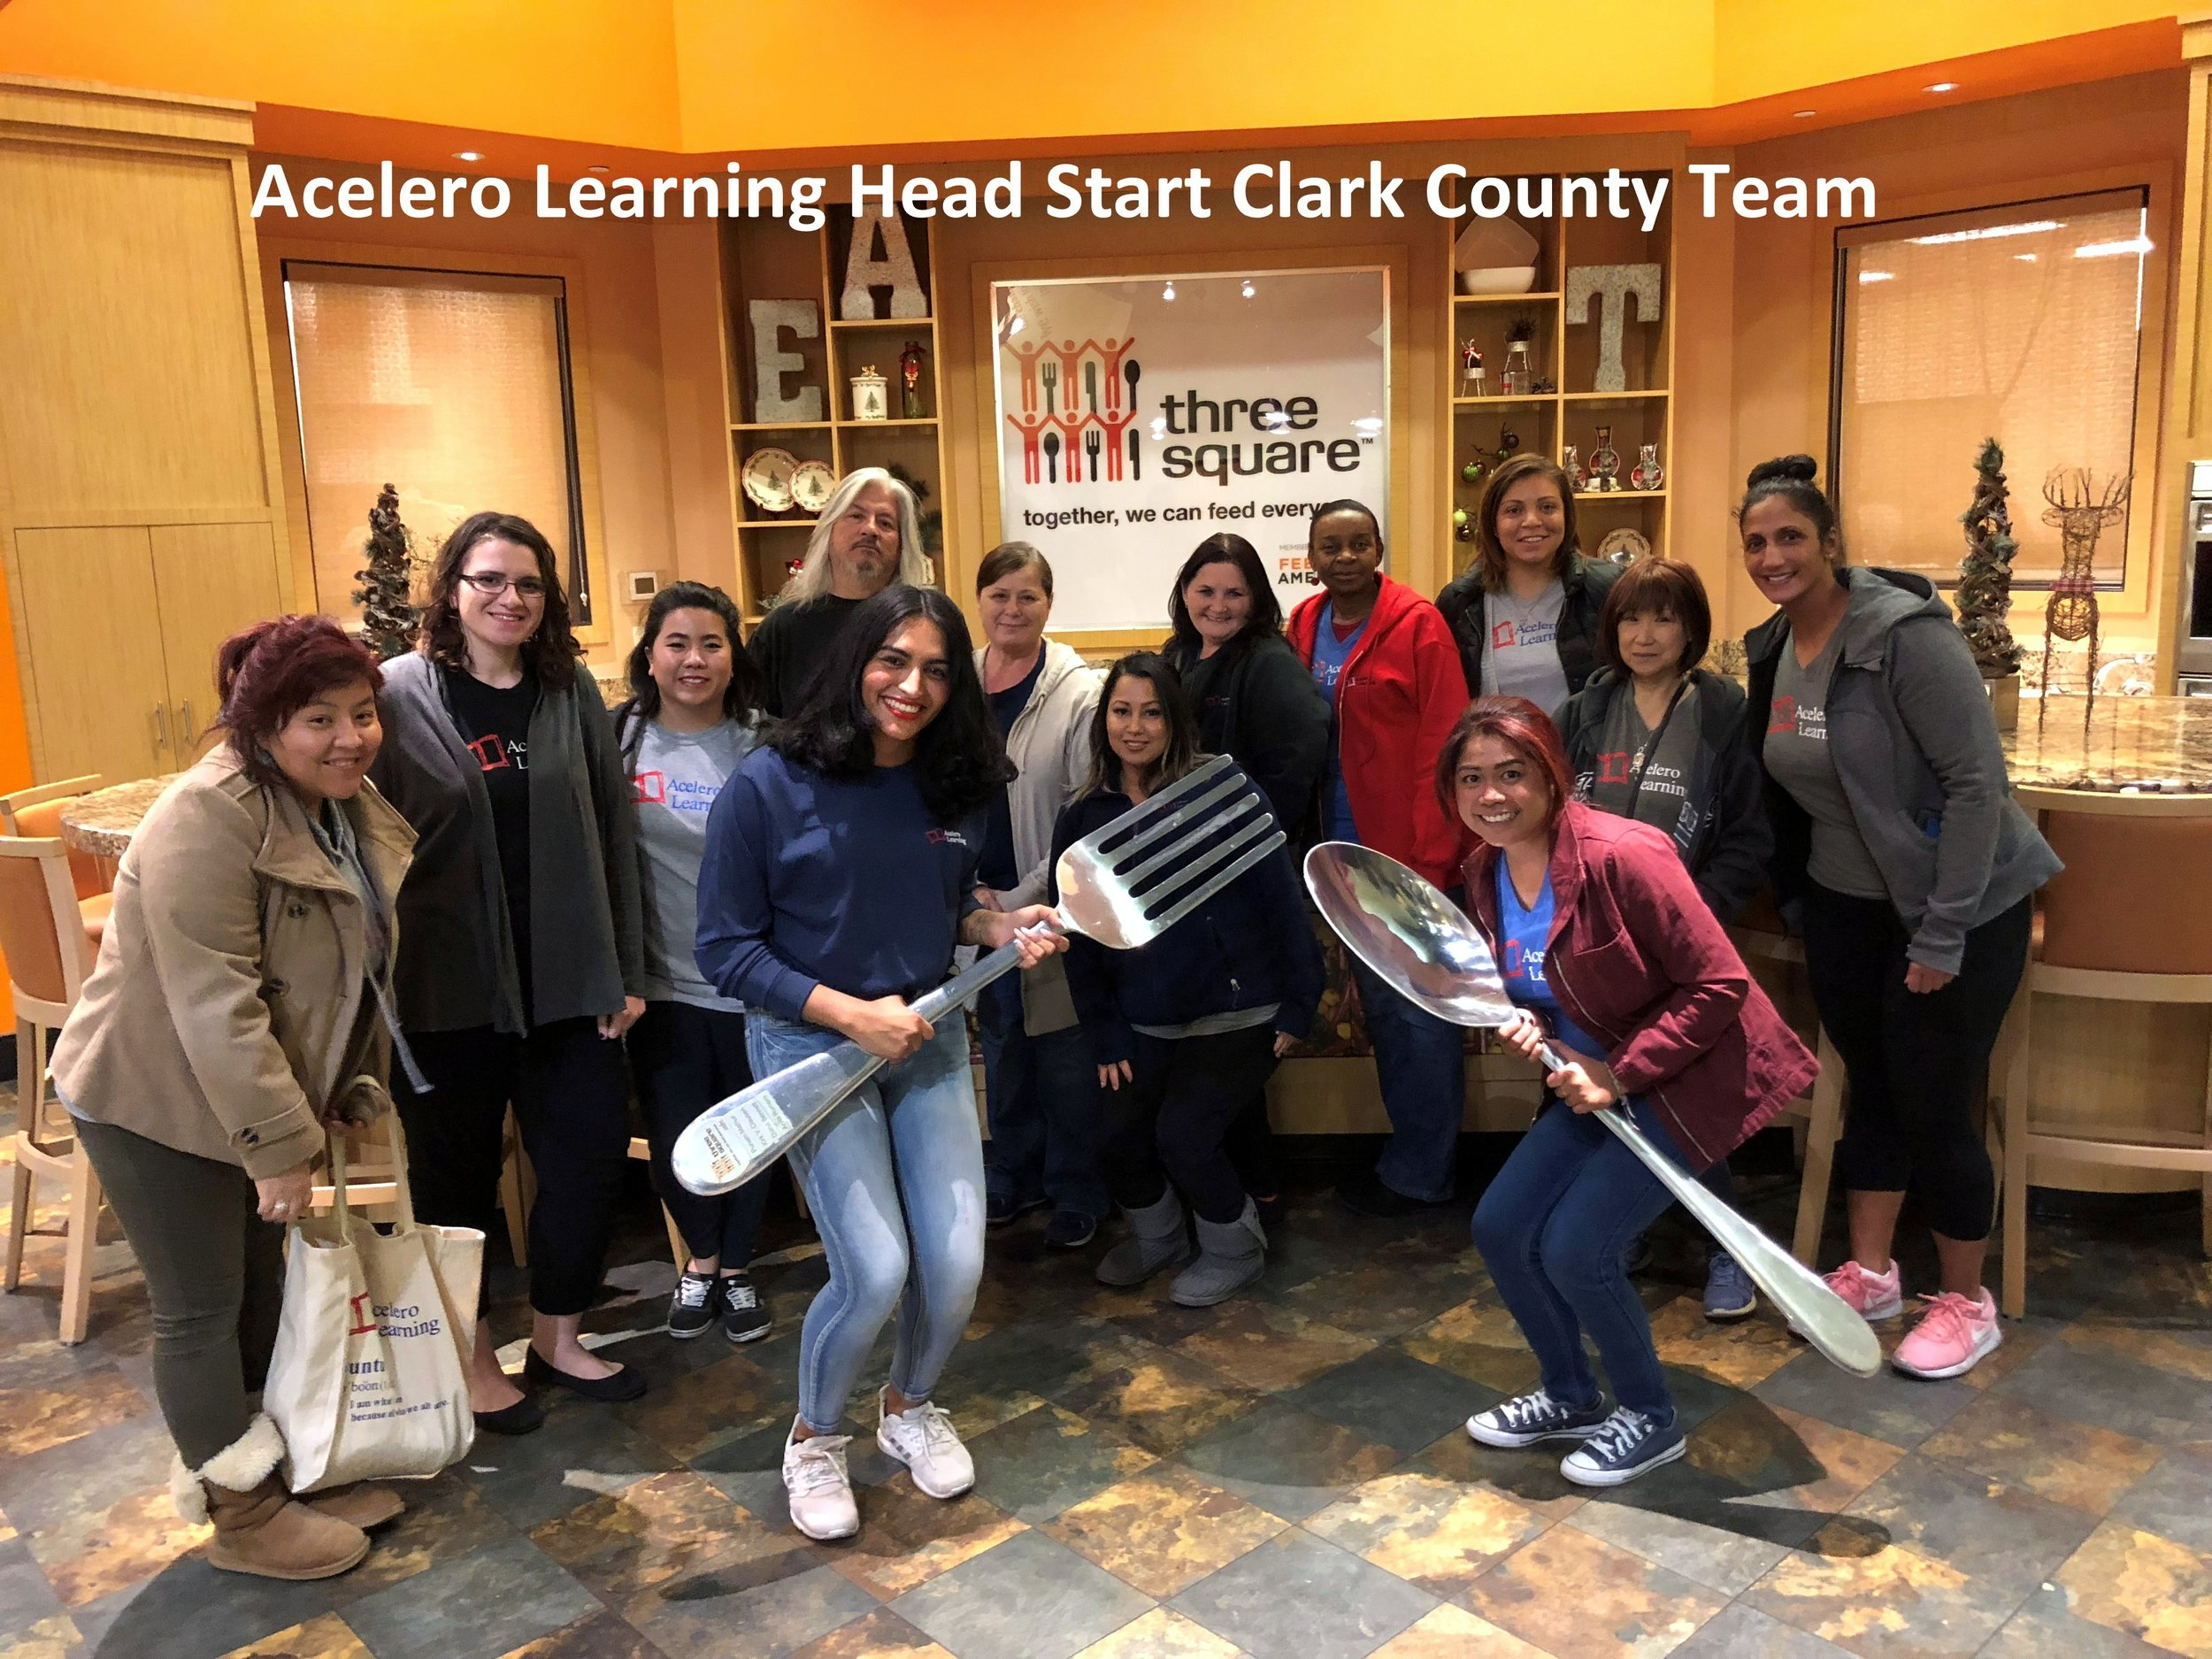 Acelero Learning Head Start Clark County Team 11.26.18.jpg